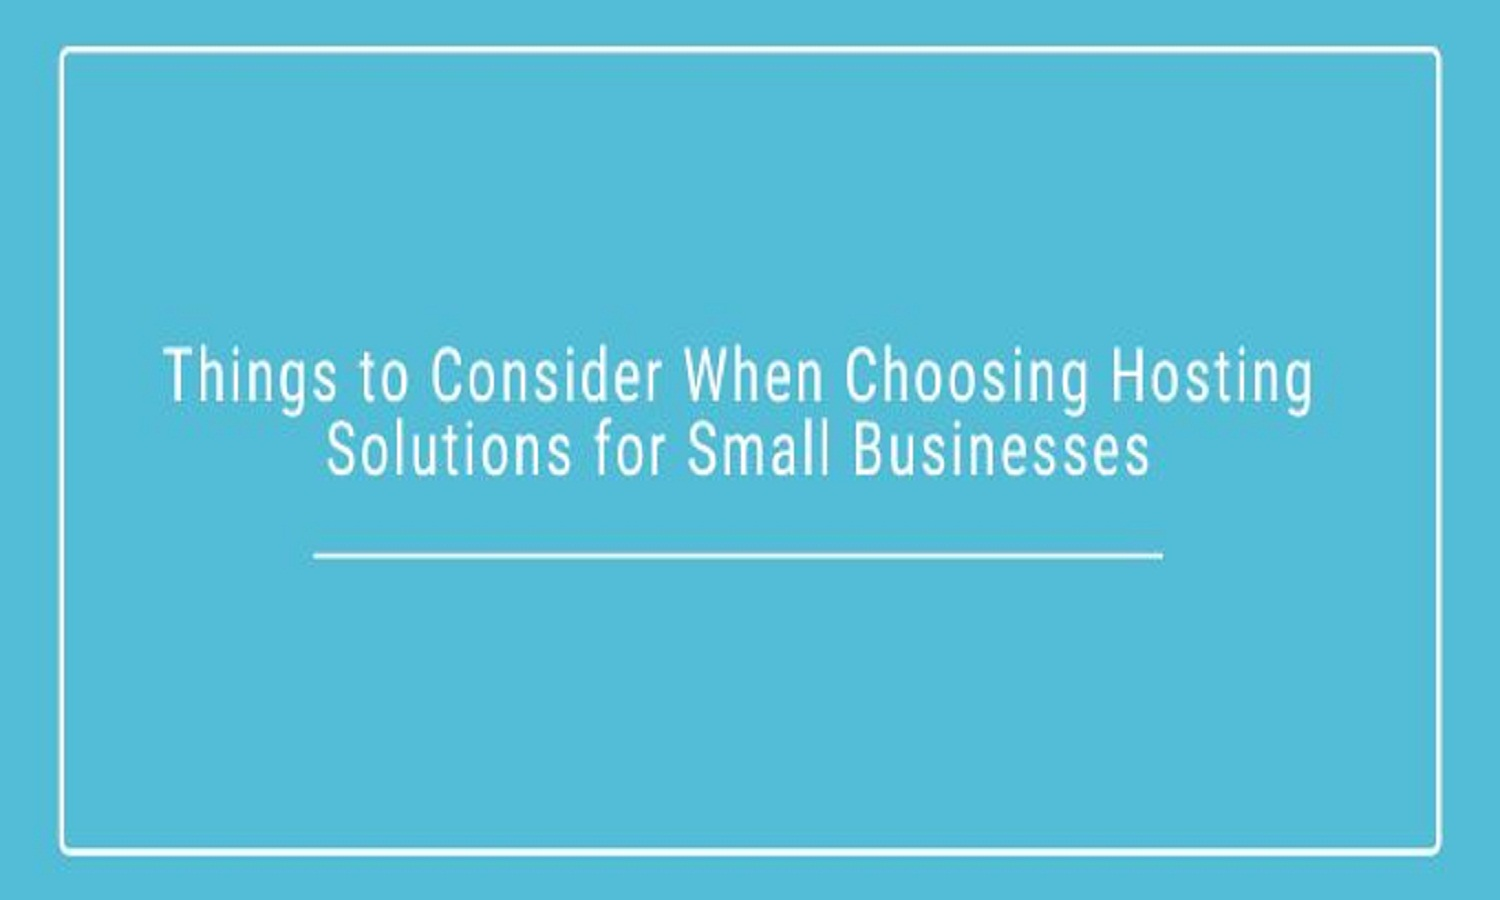 Top Tips to Choosing Affordable Web Hosting For Small Businesses